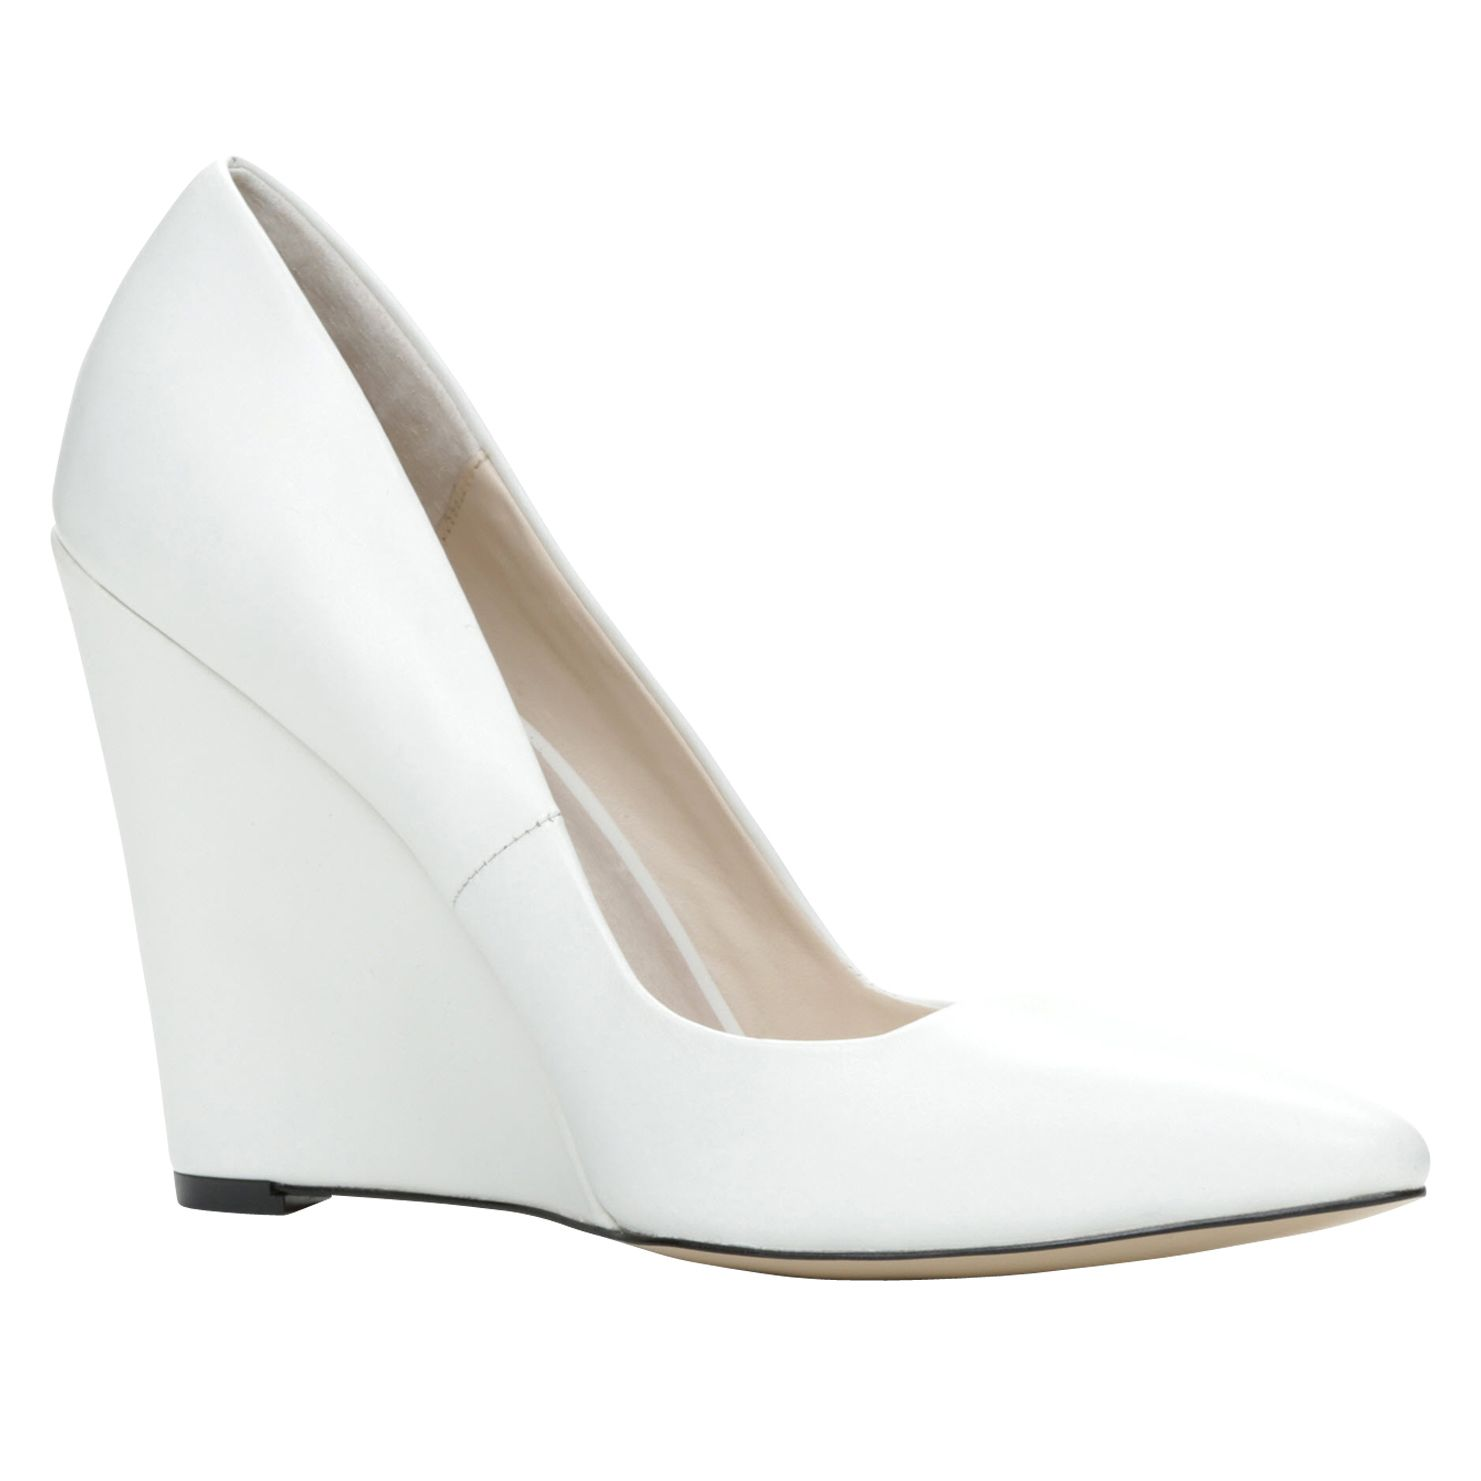 Cirrito pointed toe wedge court shoes